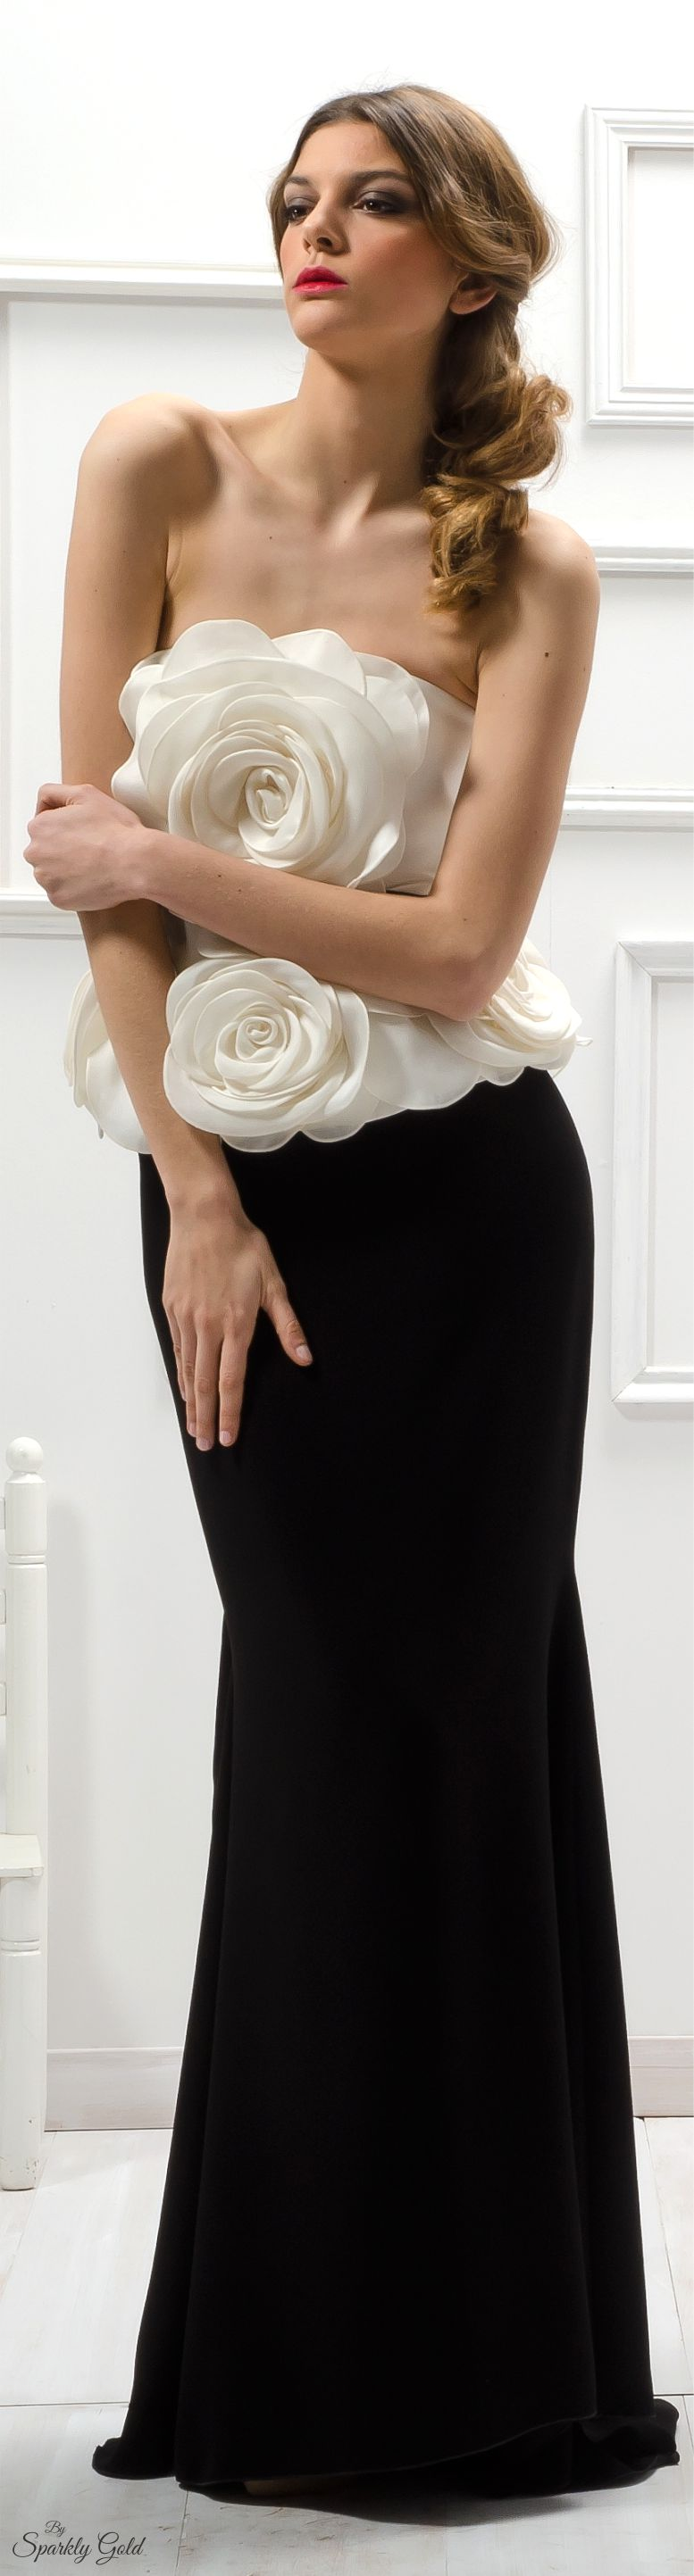 Isabel sanchis fw fashion items pinterest gowns couture